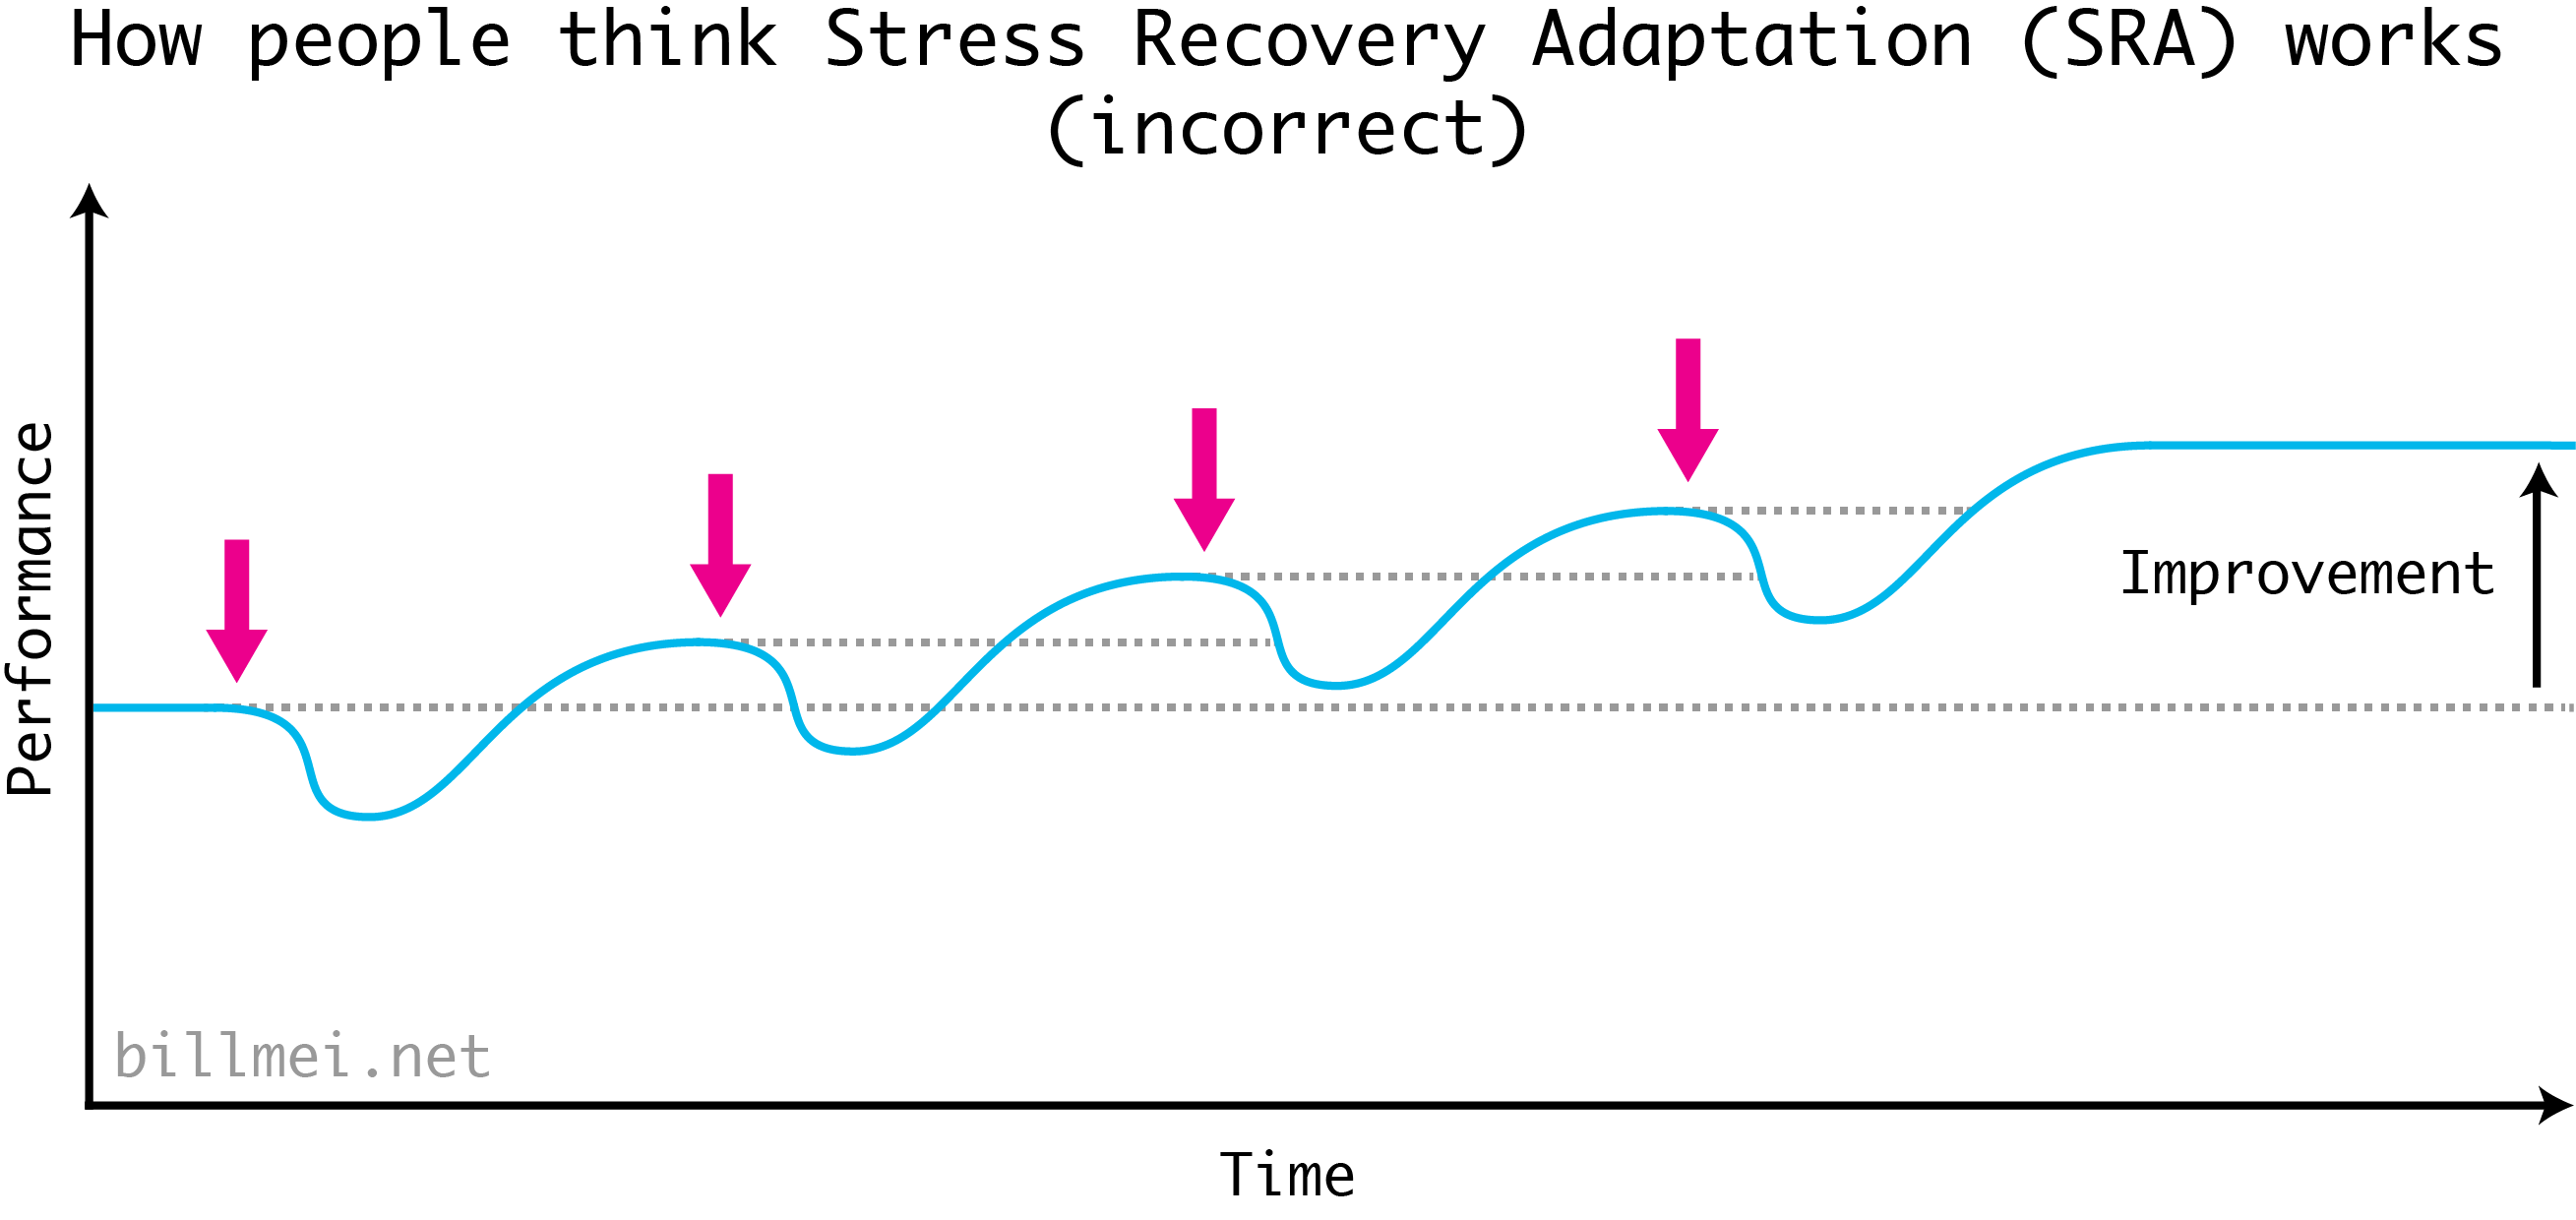 The classic diagram of the Strength Recovery Adaptation (SRA) cycle. Just as you recover to a higher baseline, you perform another workout to apply additional stress, and in order to move your fitness baseline even higher